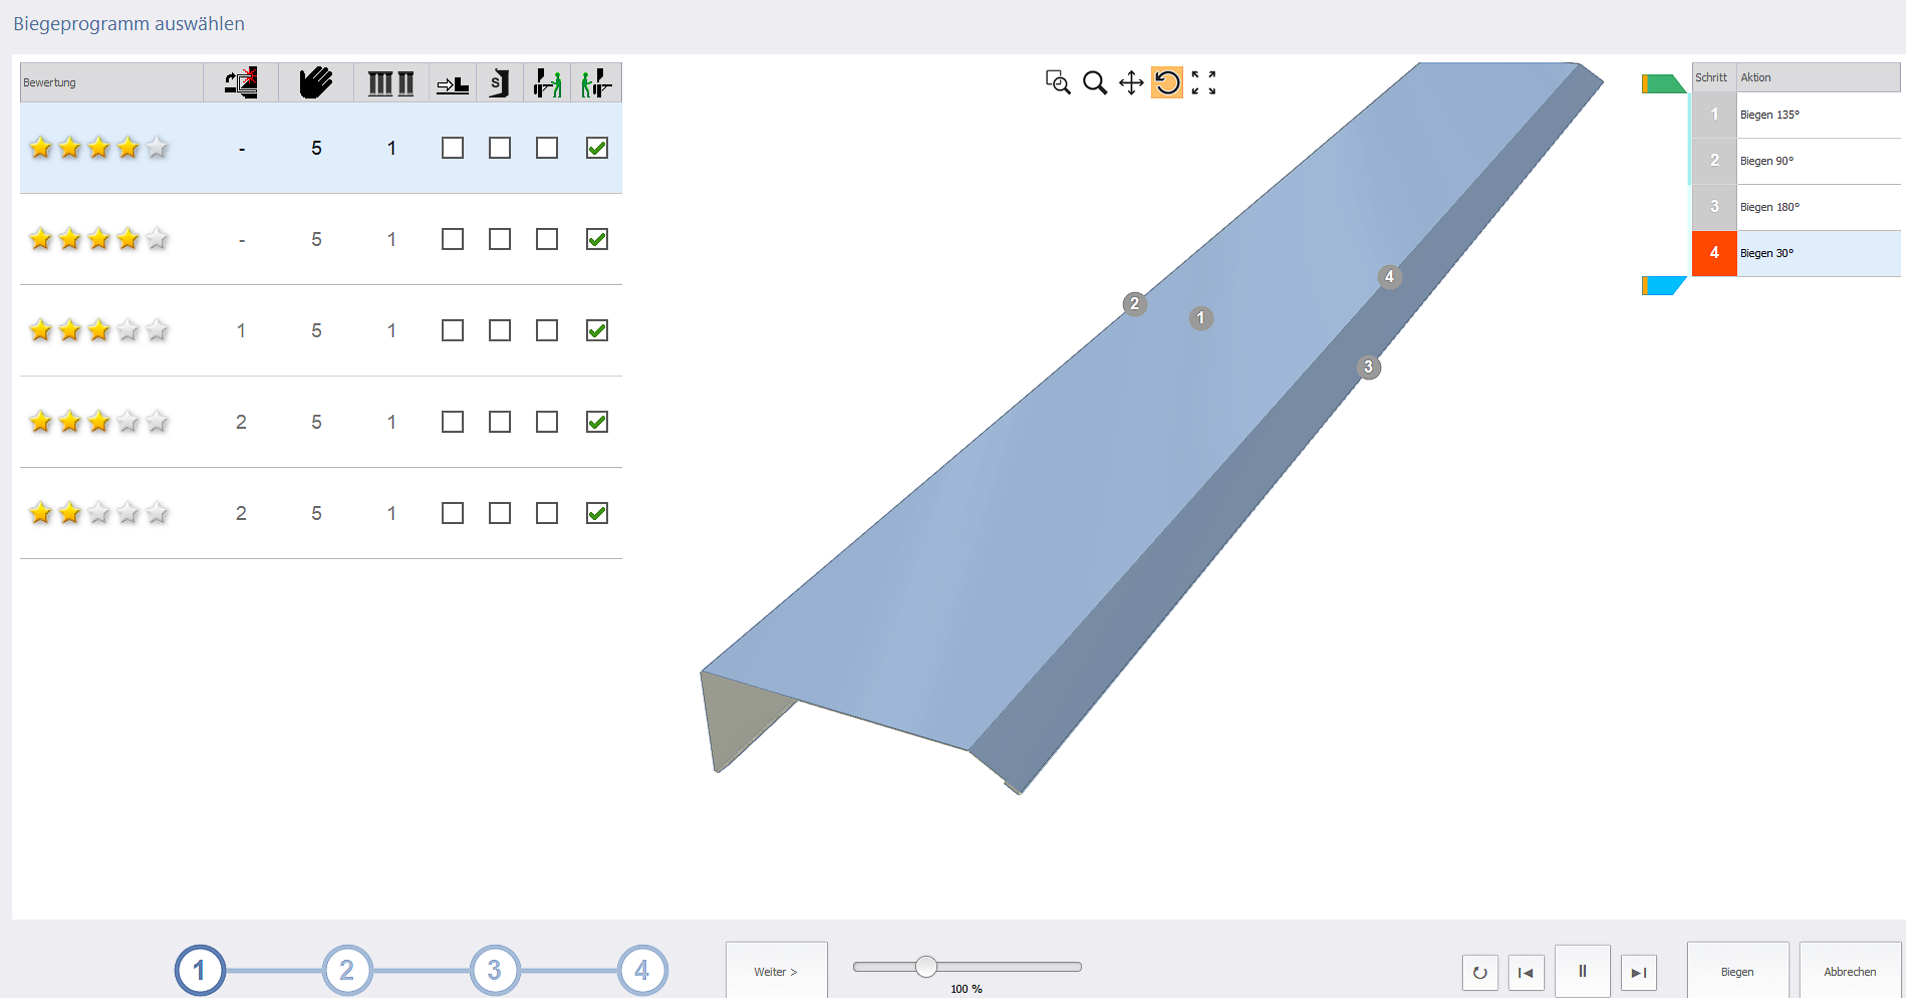 Automatically created part program. The software evaluates alternative bending stratgies with a 5 star ranking